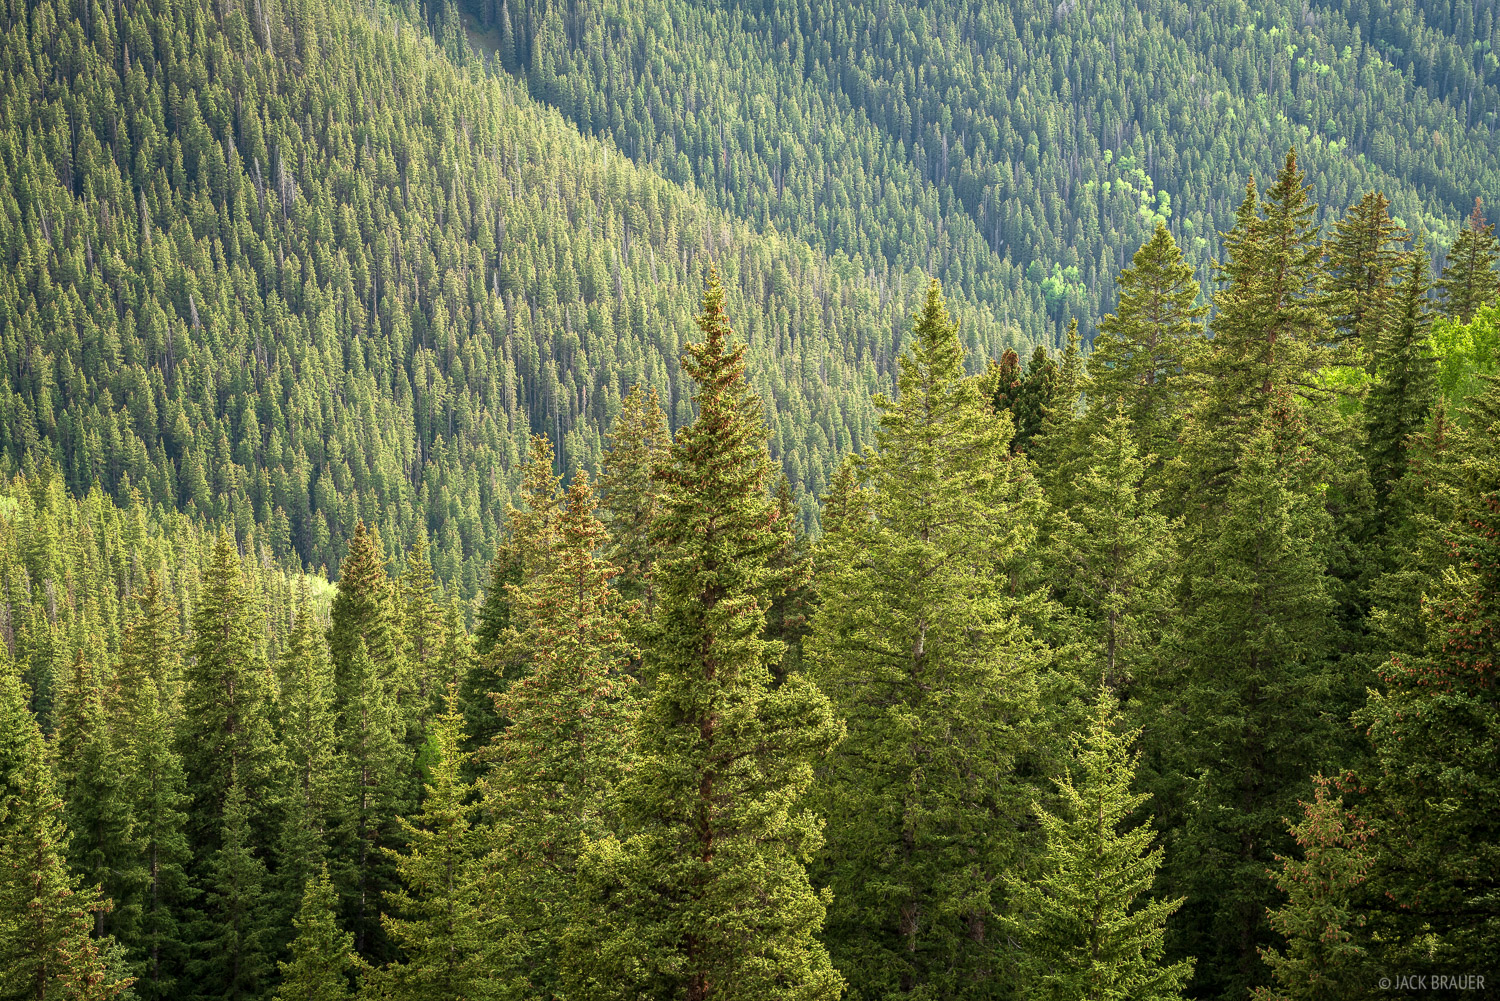 Healthy pine forest in the mountains near Ouray, Colorado.